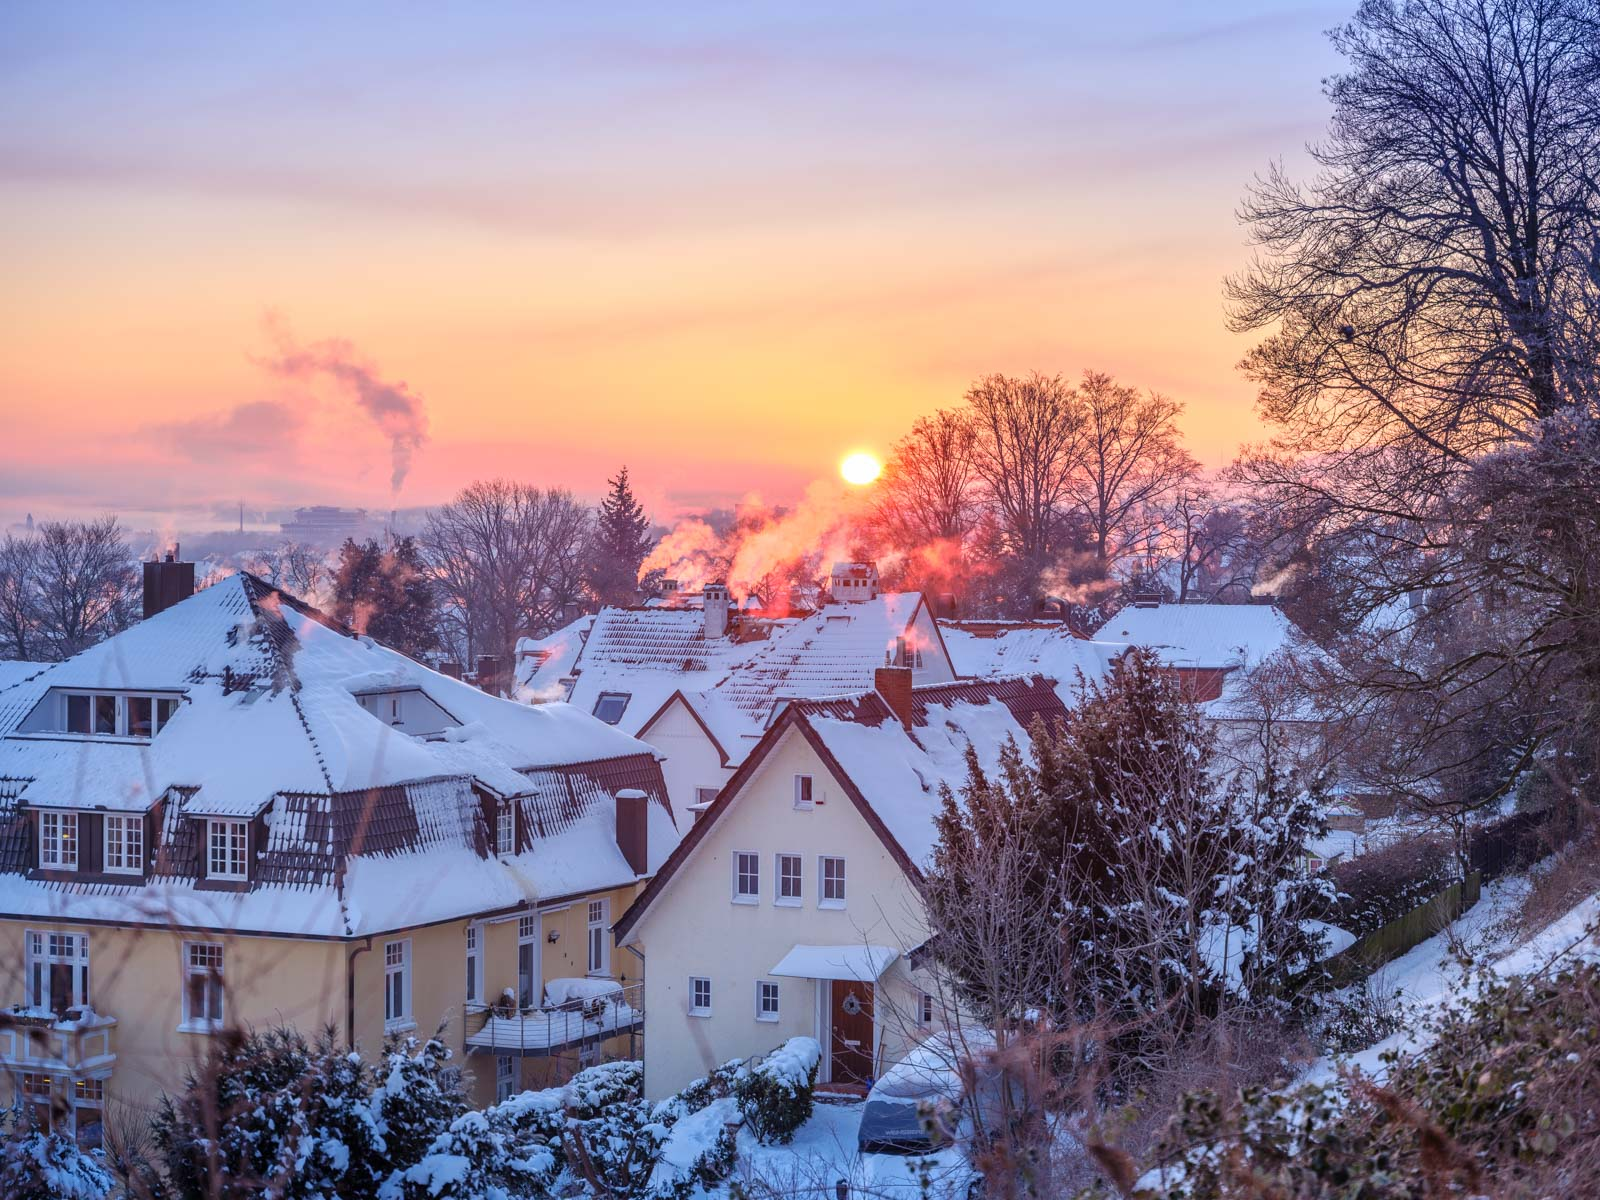 Winter sunrise over Bielefeld (Germany).